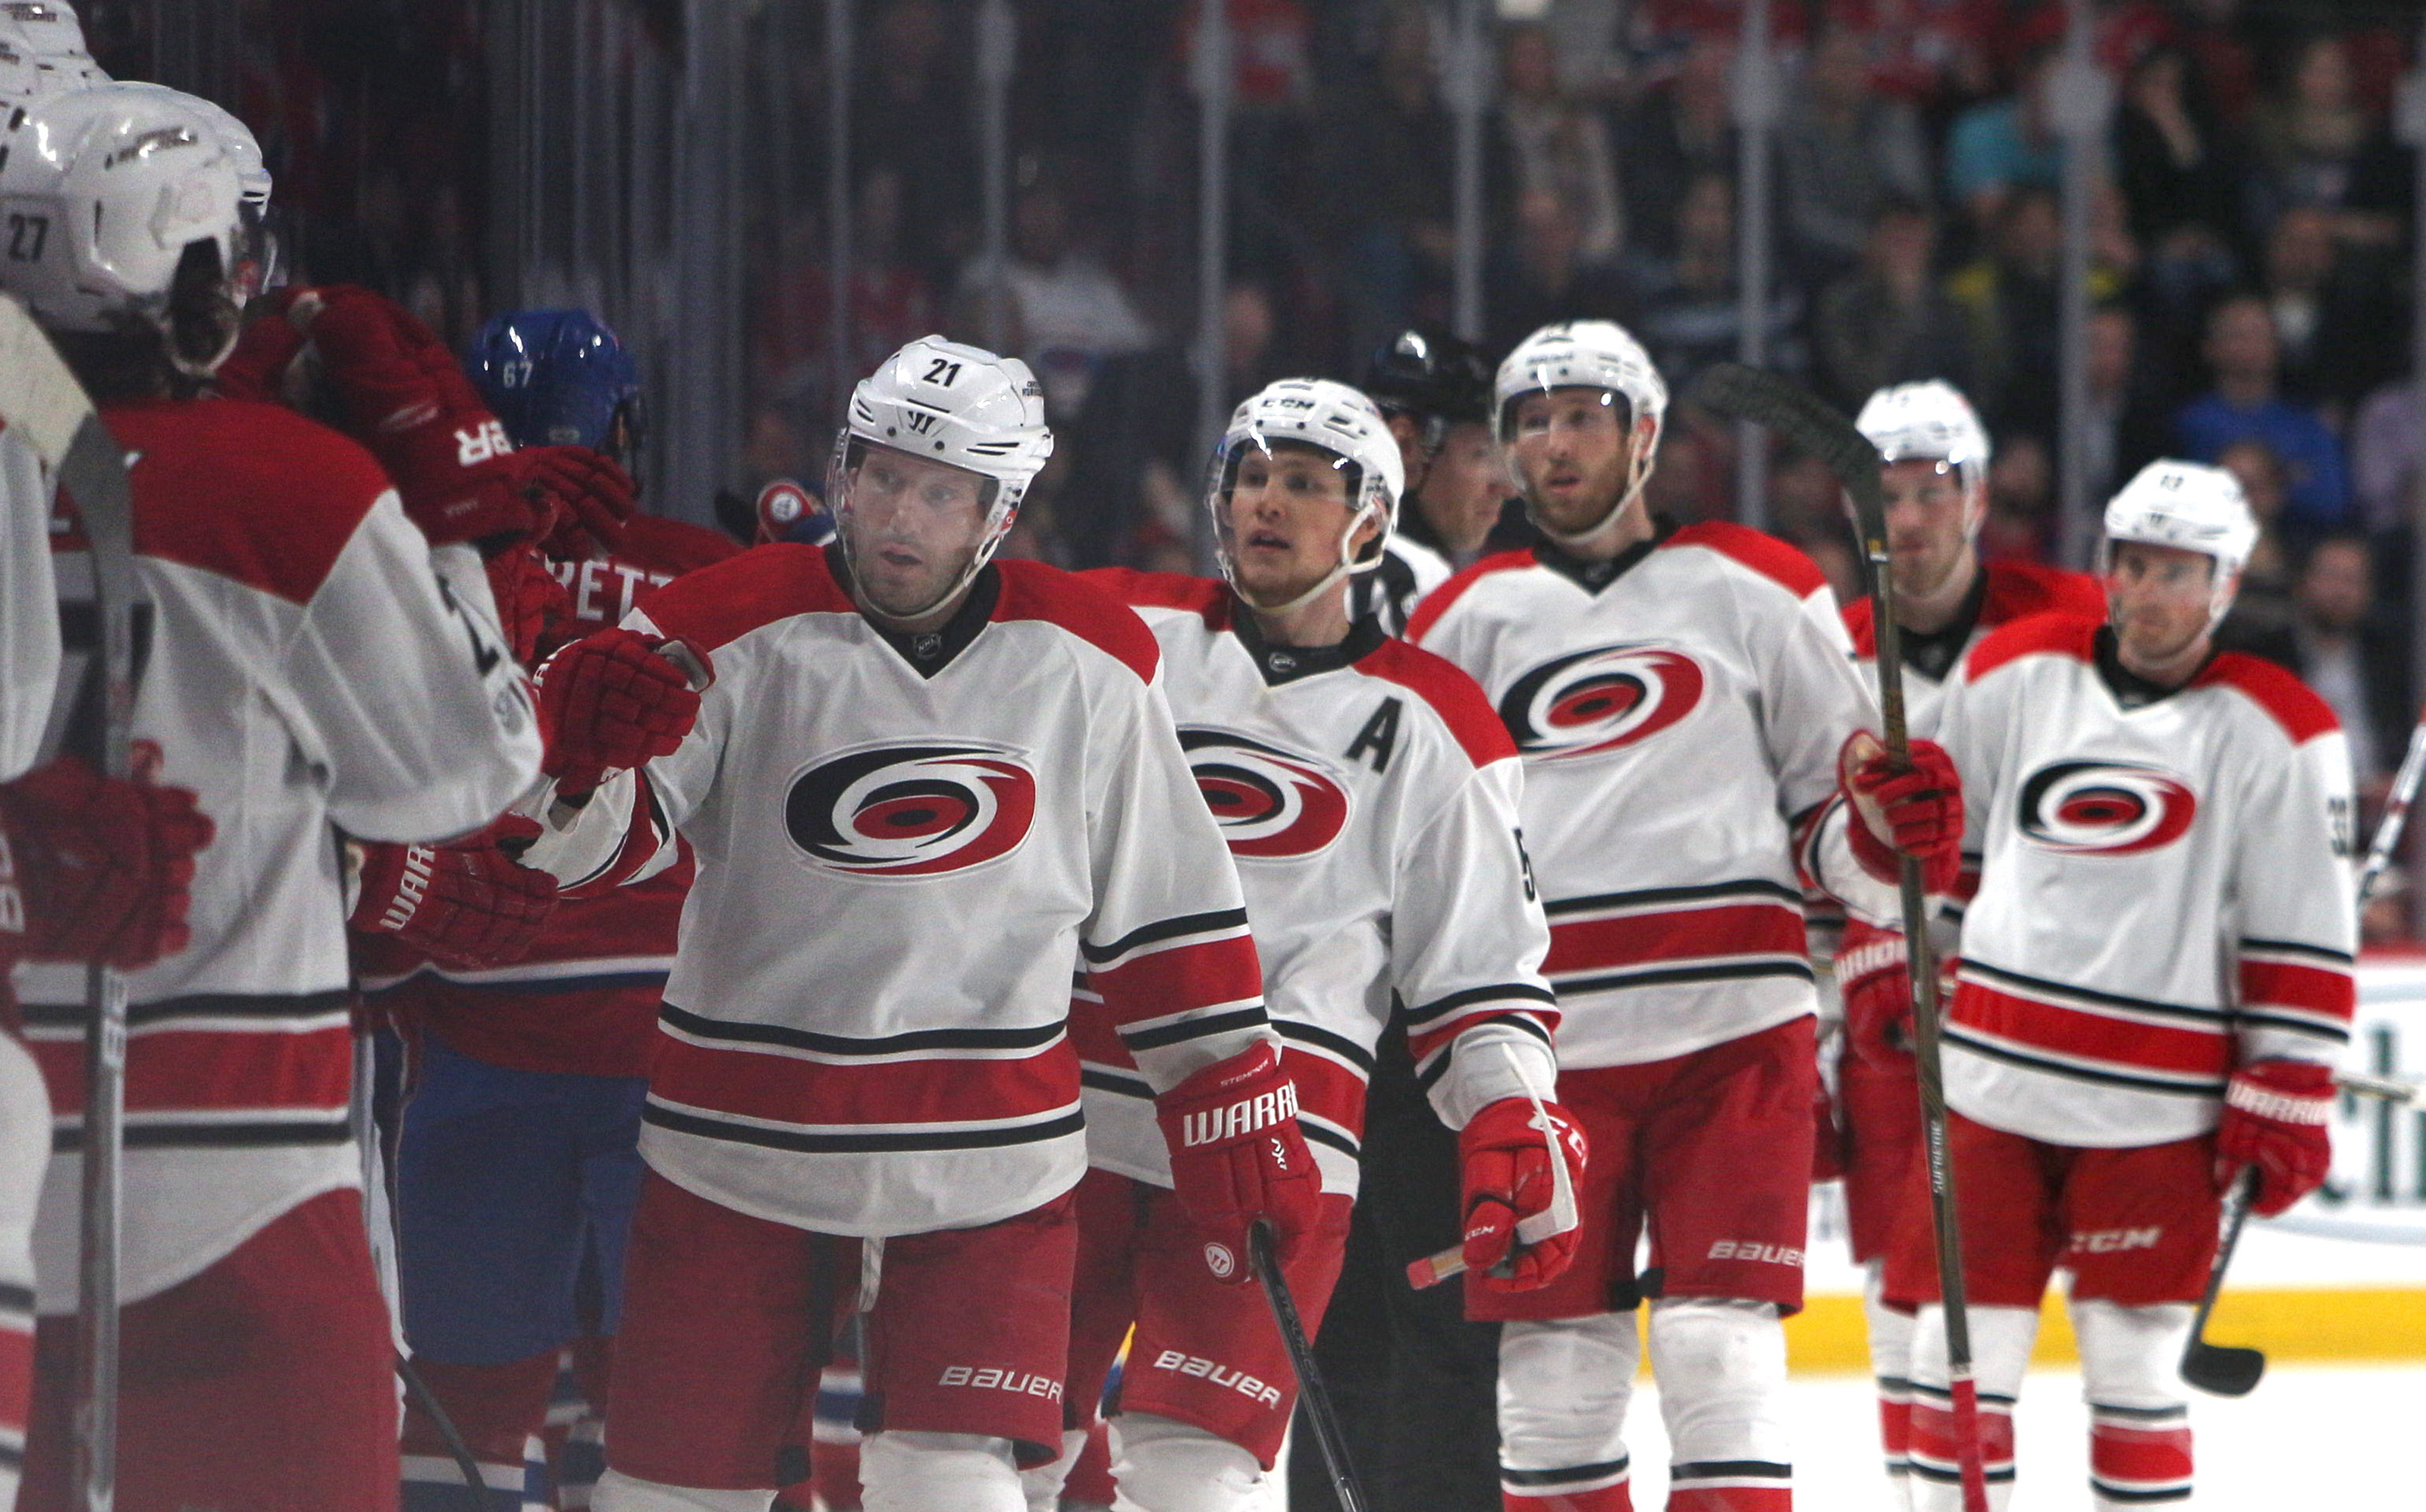 9967050-nhl-carolina-hurricanes-at-montreal-canadiens